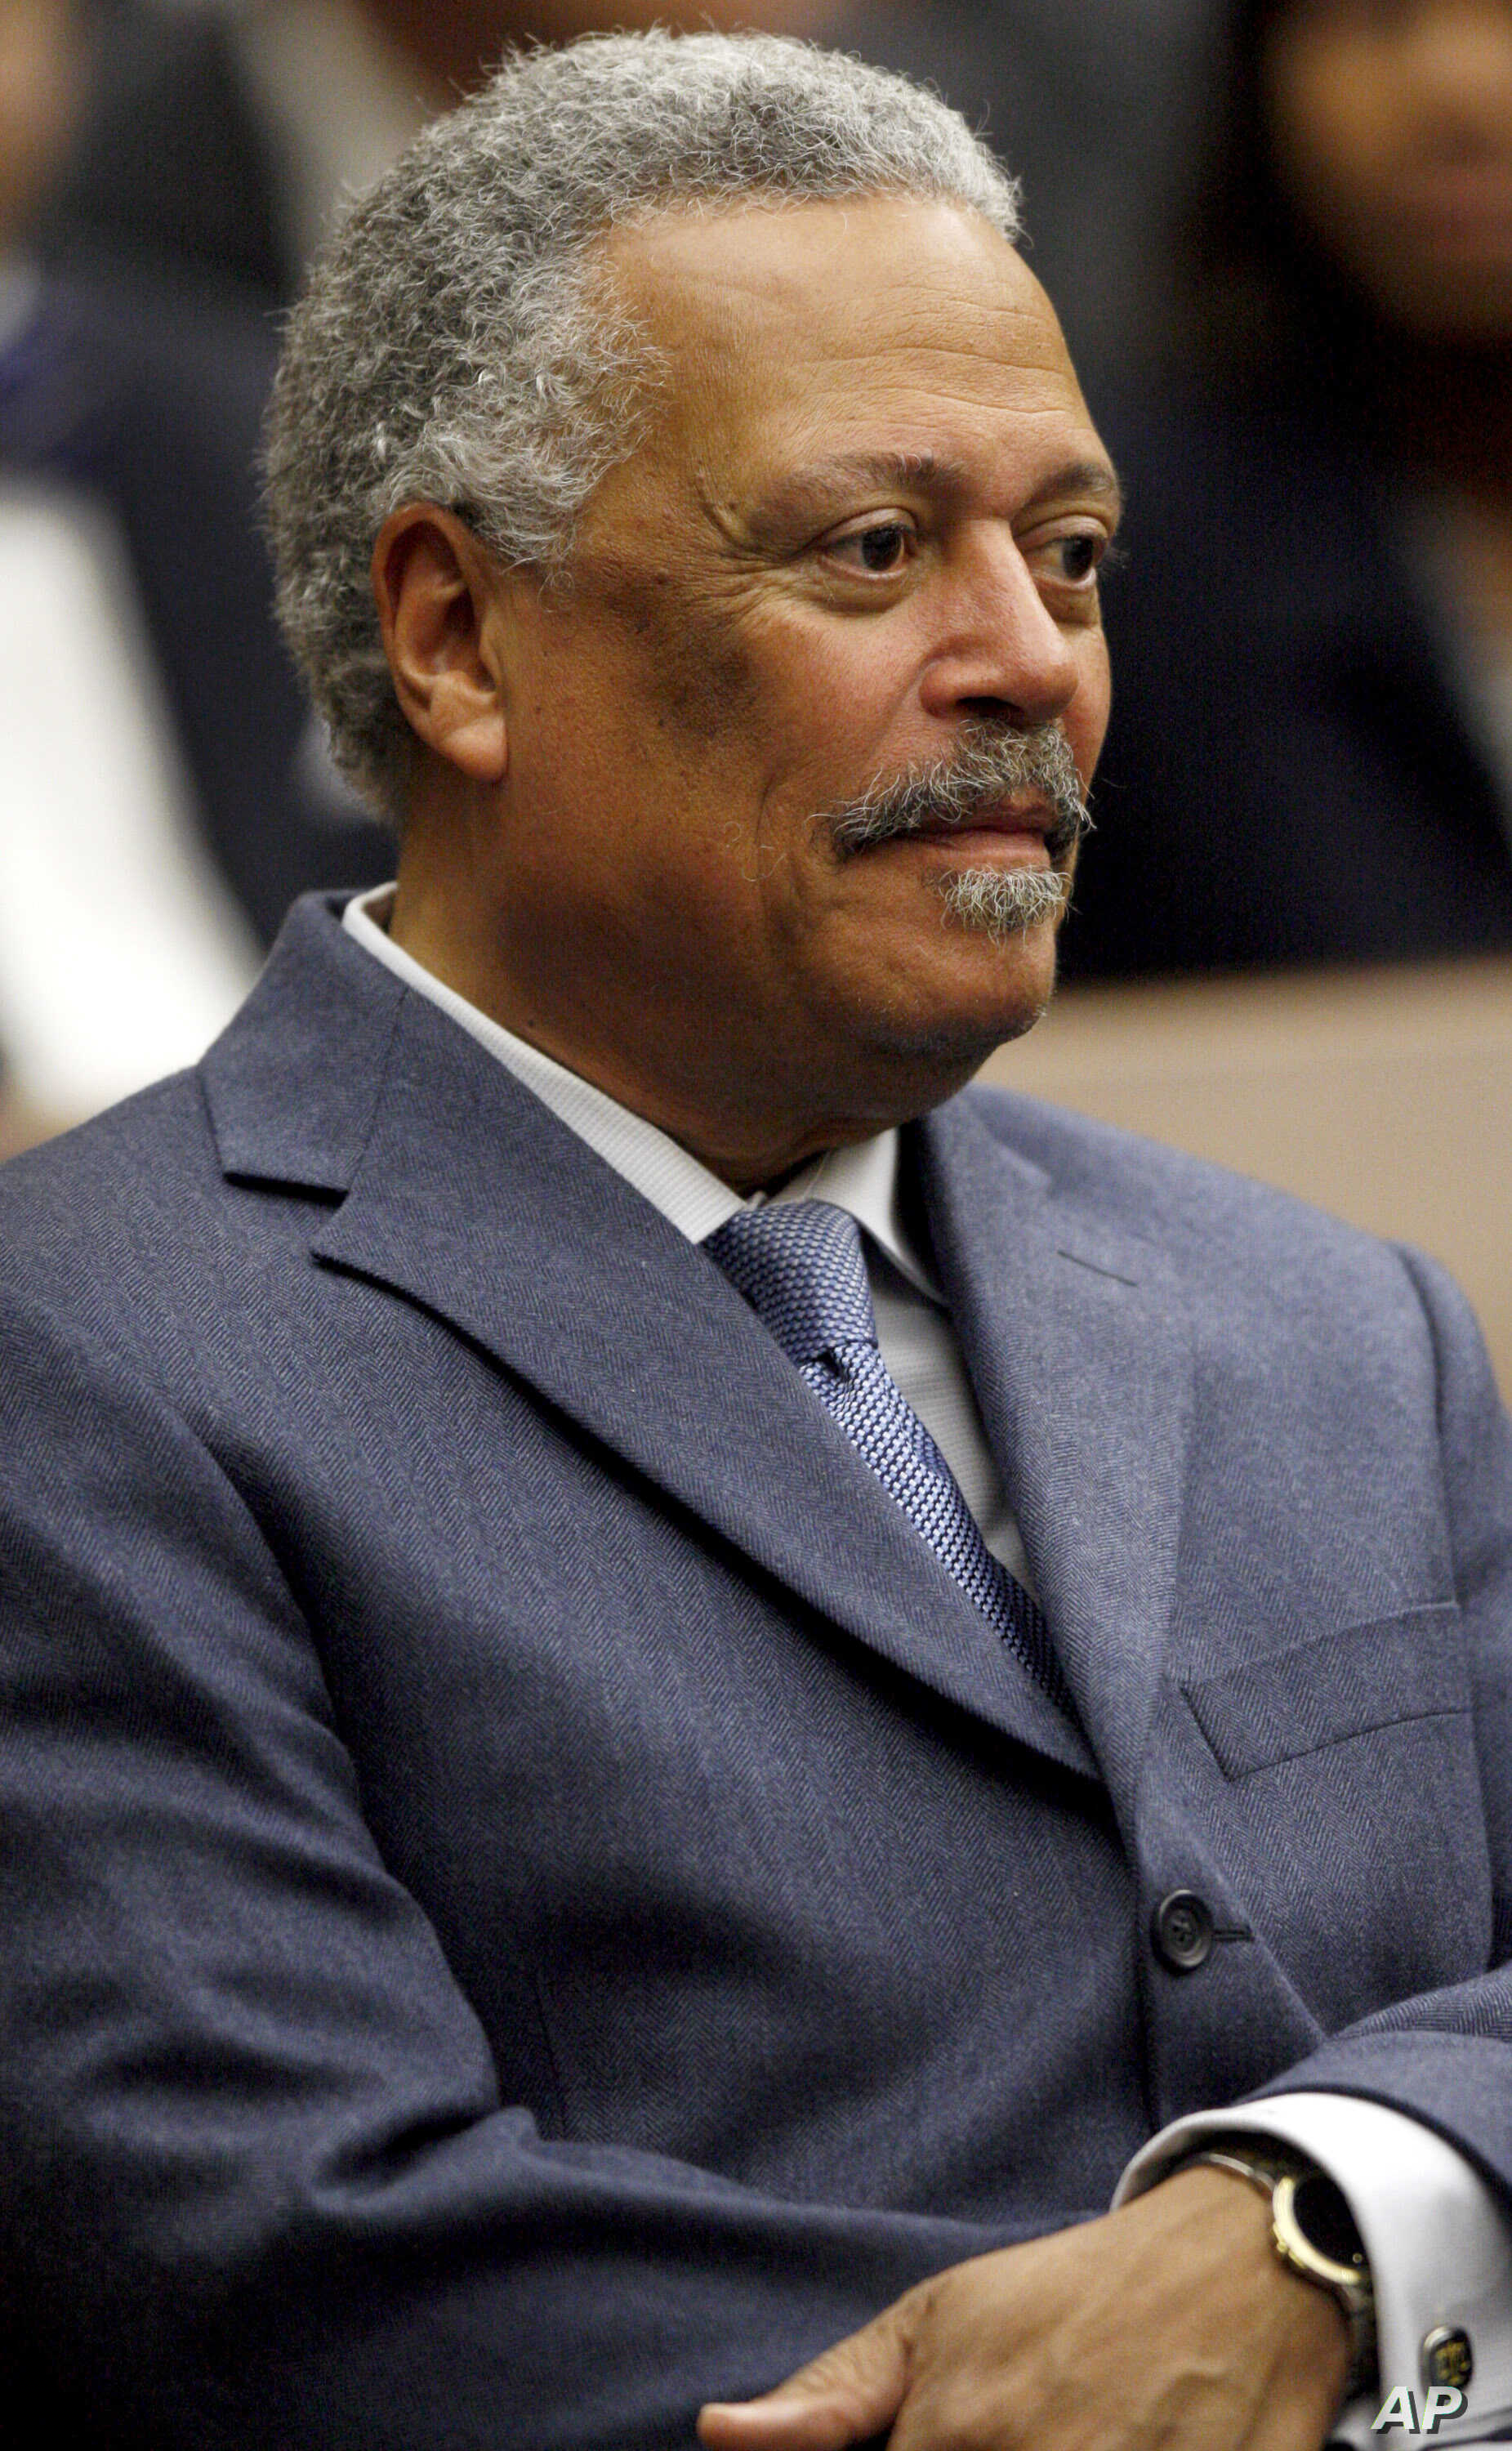 FILE - U.S. District Judge Emmet G. Sullivan is pictured during a ceremony at the federal courthouse in Washington, May 1, 2008.